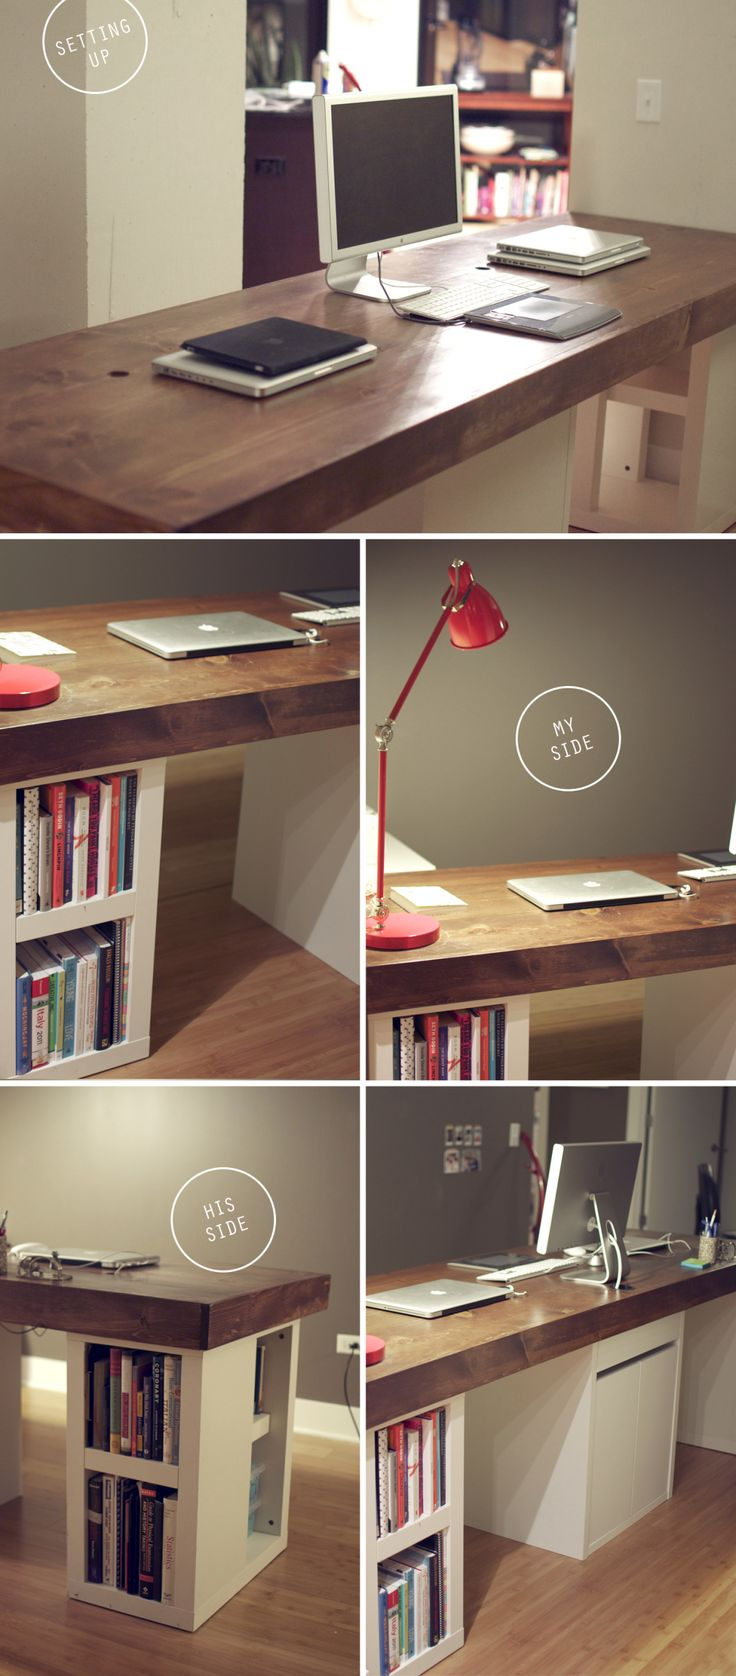 DIY OFFICE MAKEOVER...functioning dual desks using minimal space. Can we make these and chuck those Huge desks for our interns and part timers? Maybe even out of the old desks!